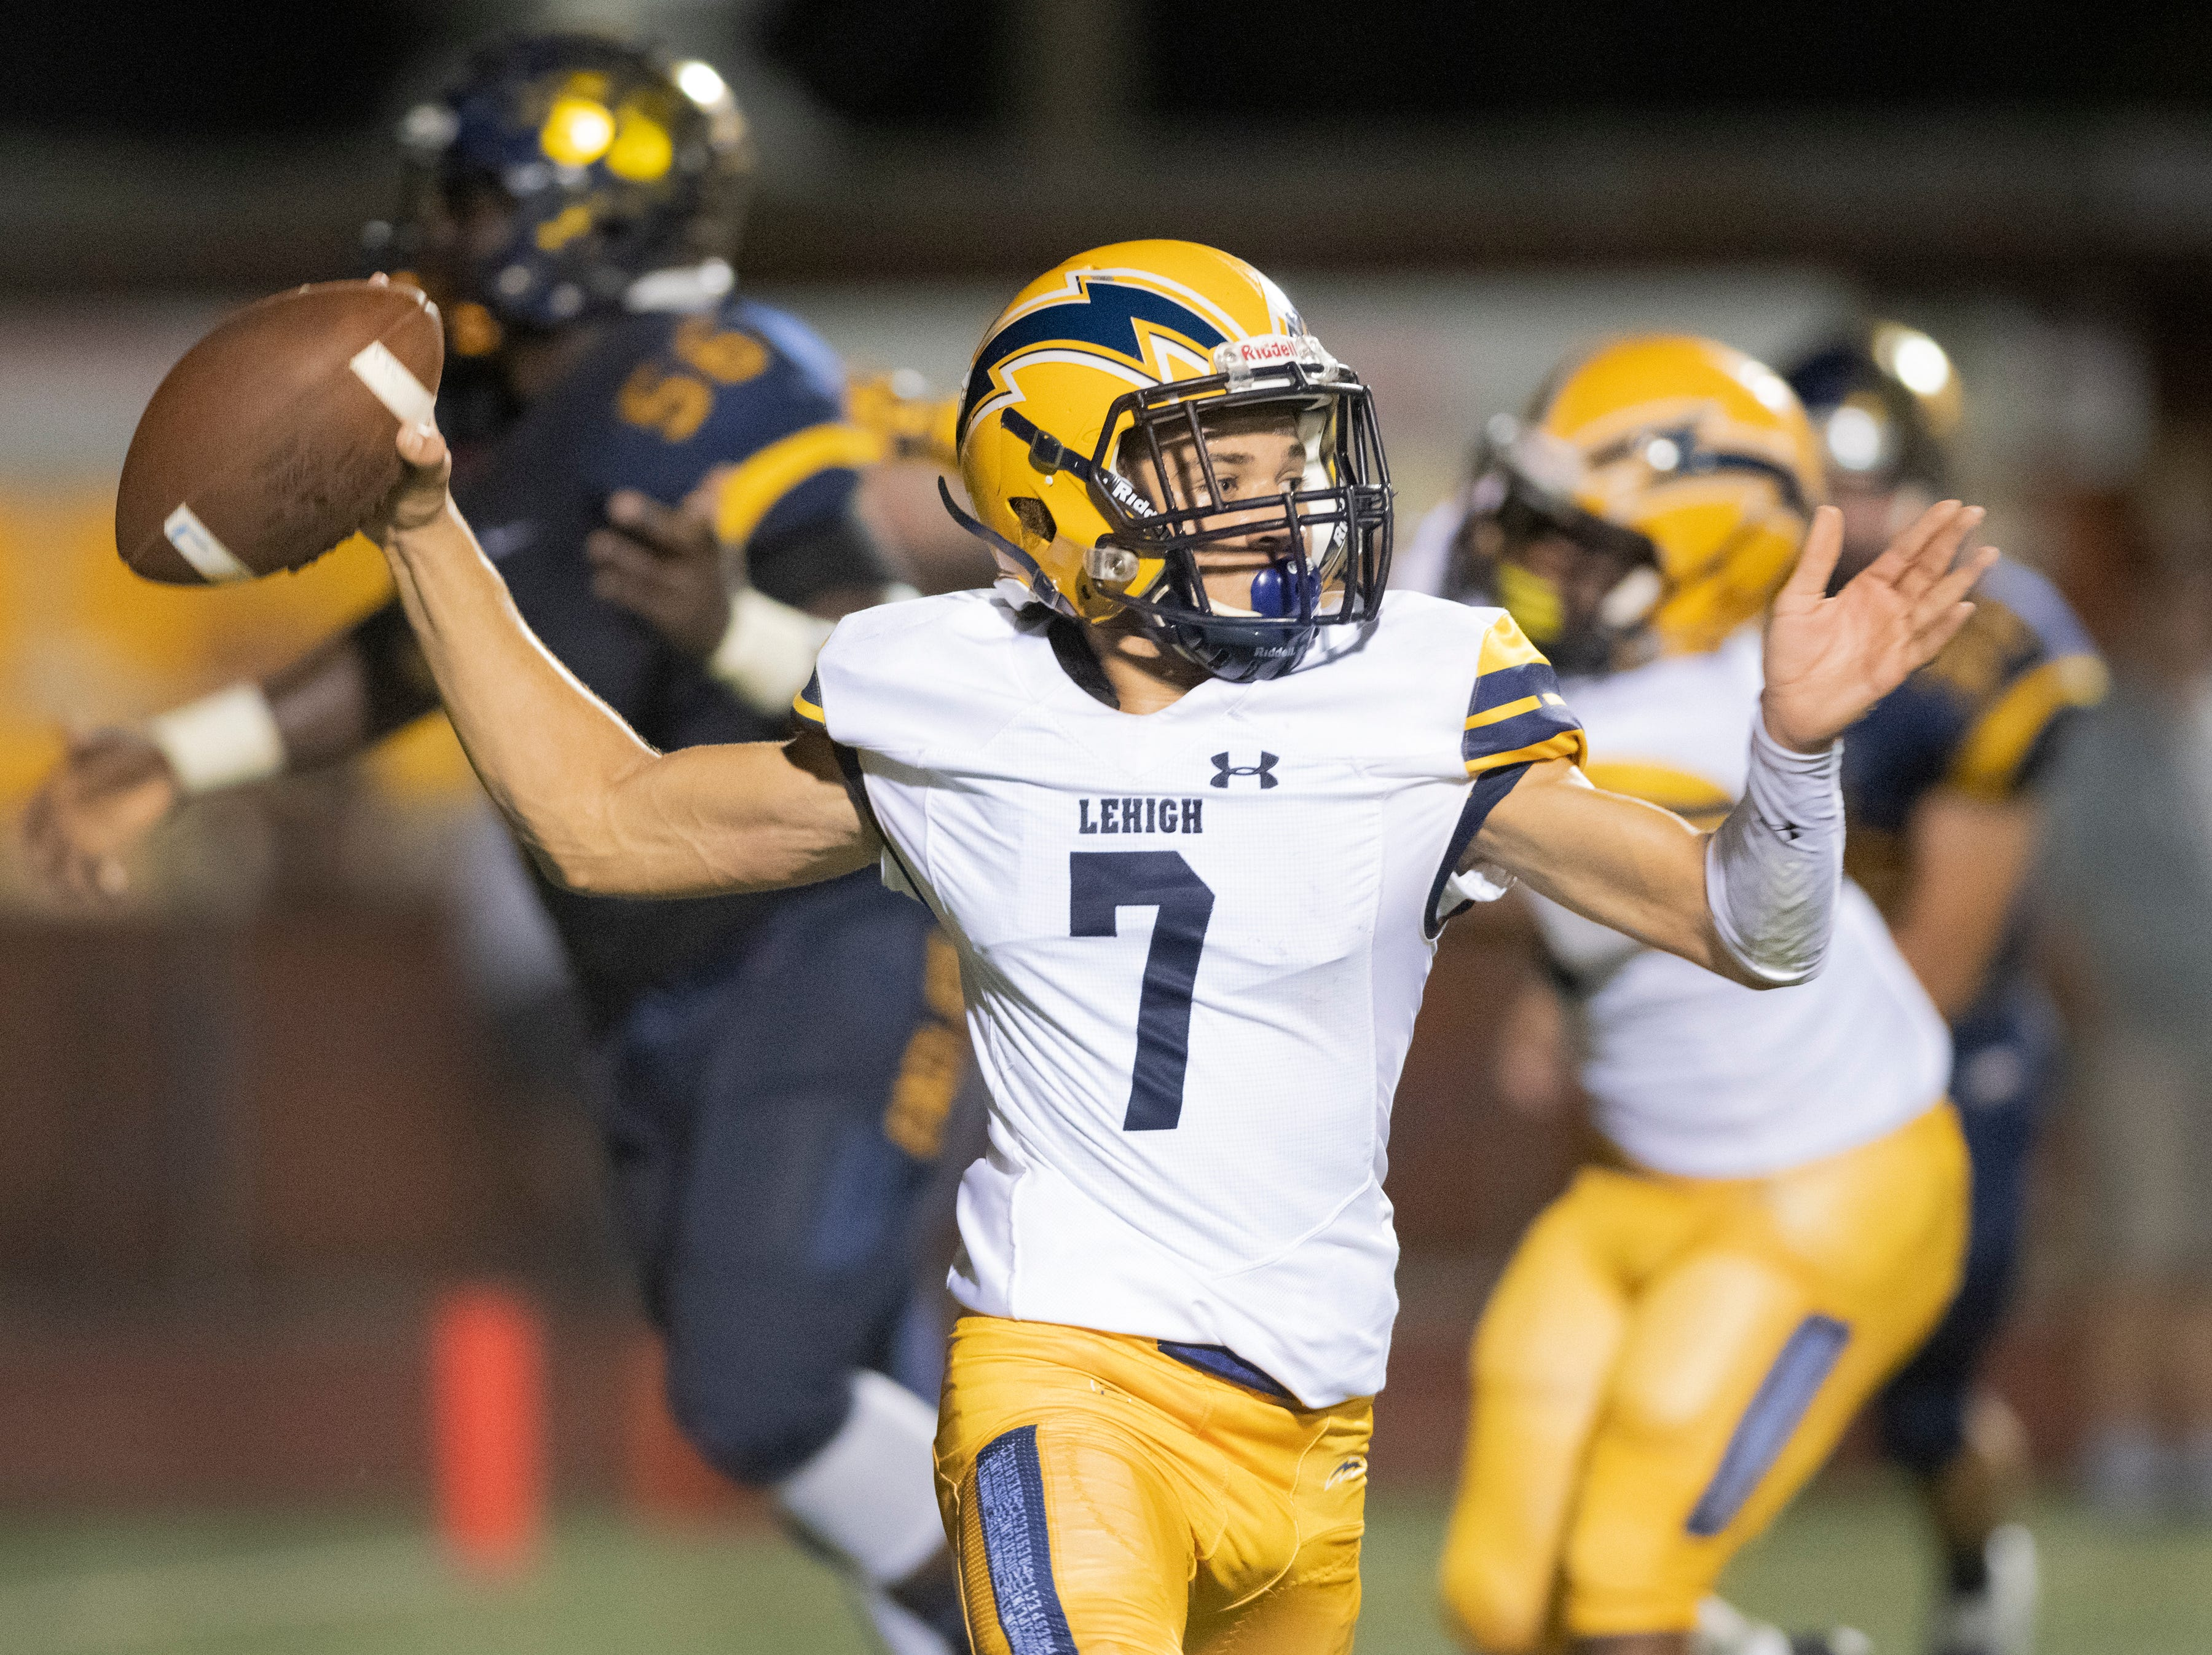 D'Mateo Collins of Lehigh throws a pass during the Class 6A regional quarterfinal playoff game against Naples at Naples High on Friday night, November 9, 2018.